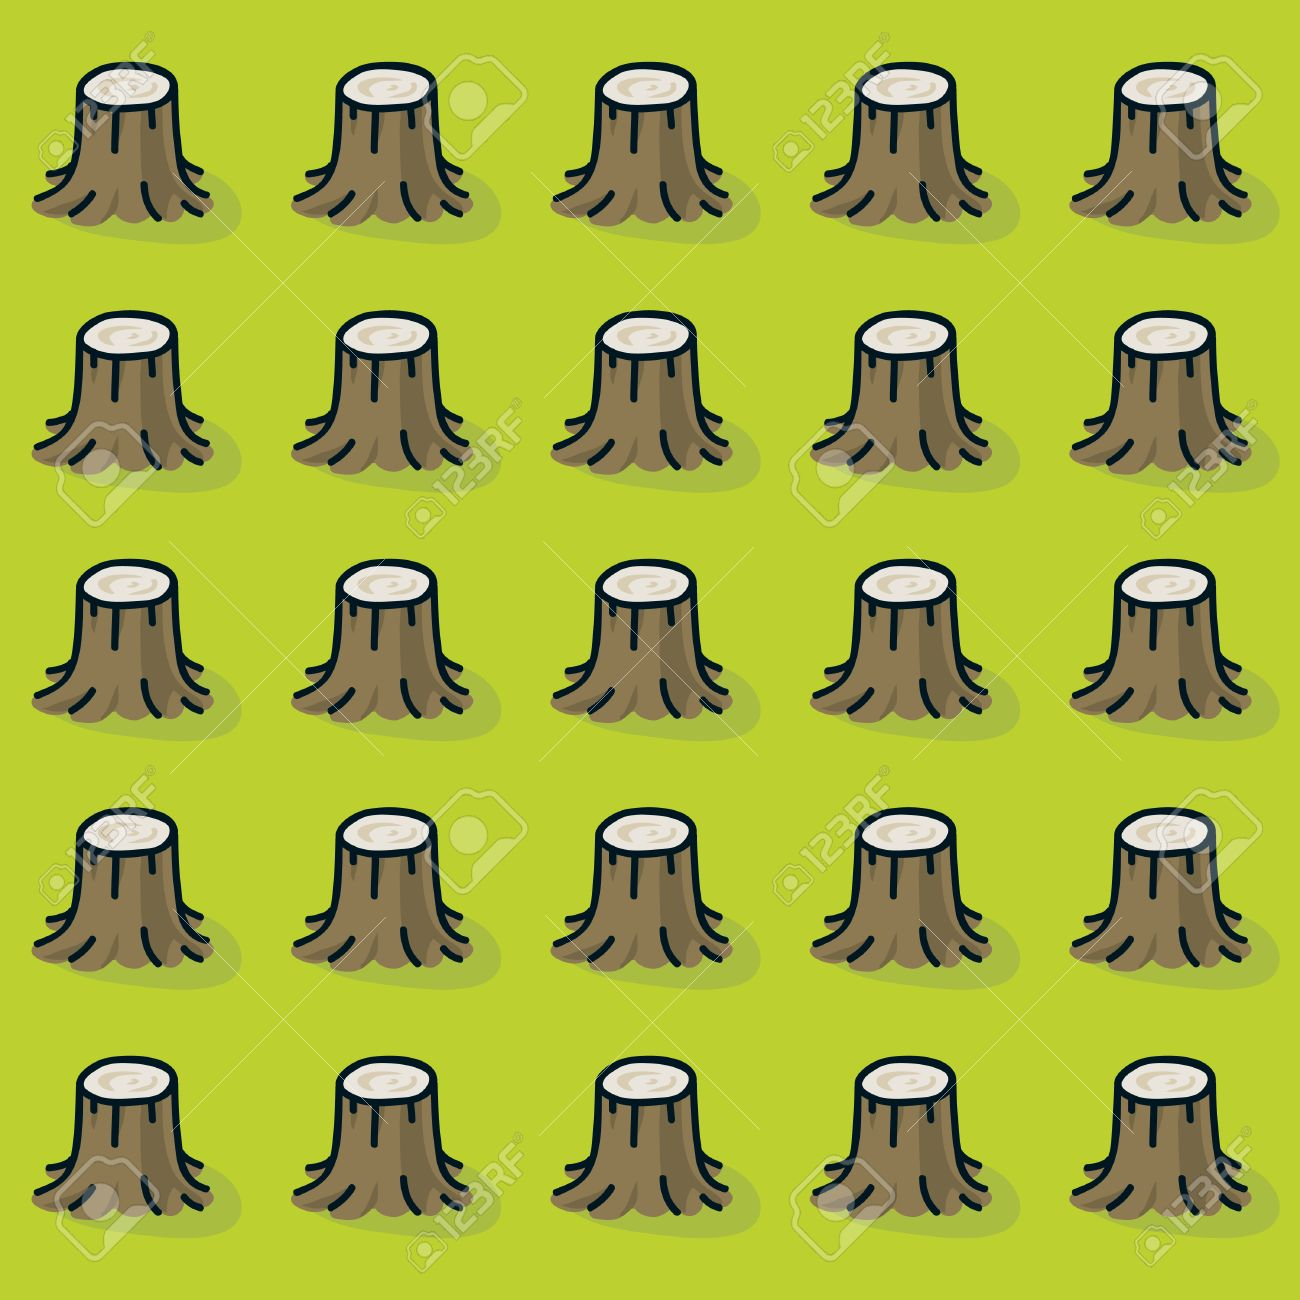 Cartoon Tree Stumps In A Forest That Was Completely Cut Down Stock Photo Picture And Royalty Free Image Image 28815060 Were the trees cut down. cartoon tree stumps in a forest that was completely cut down